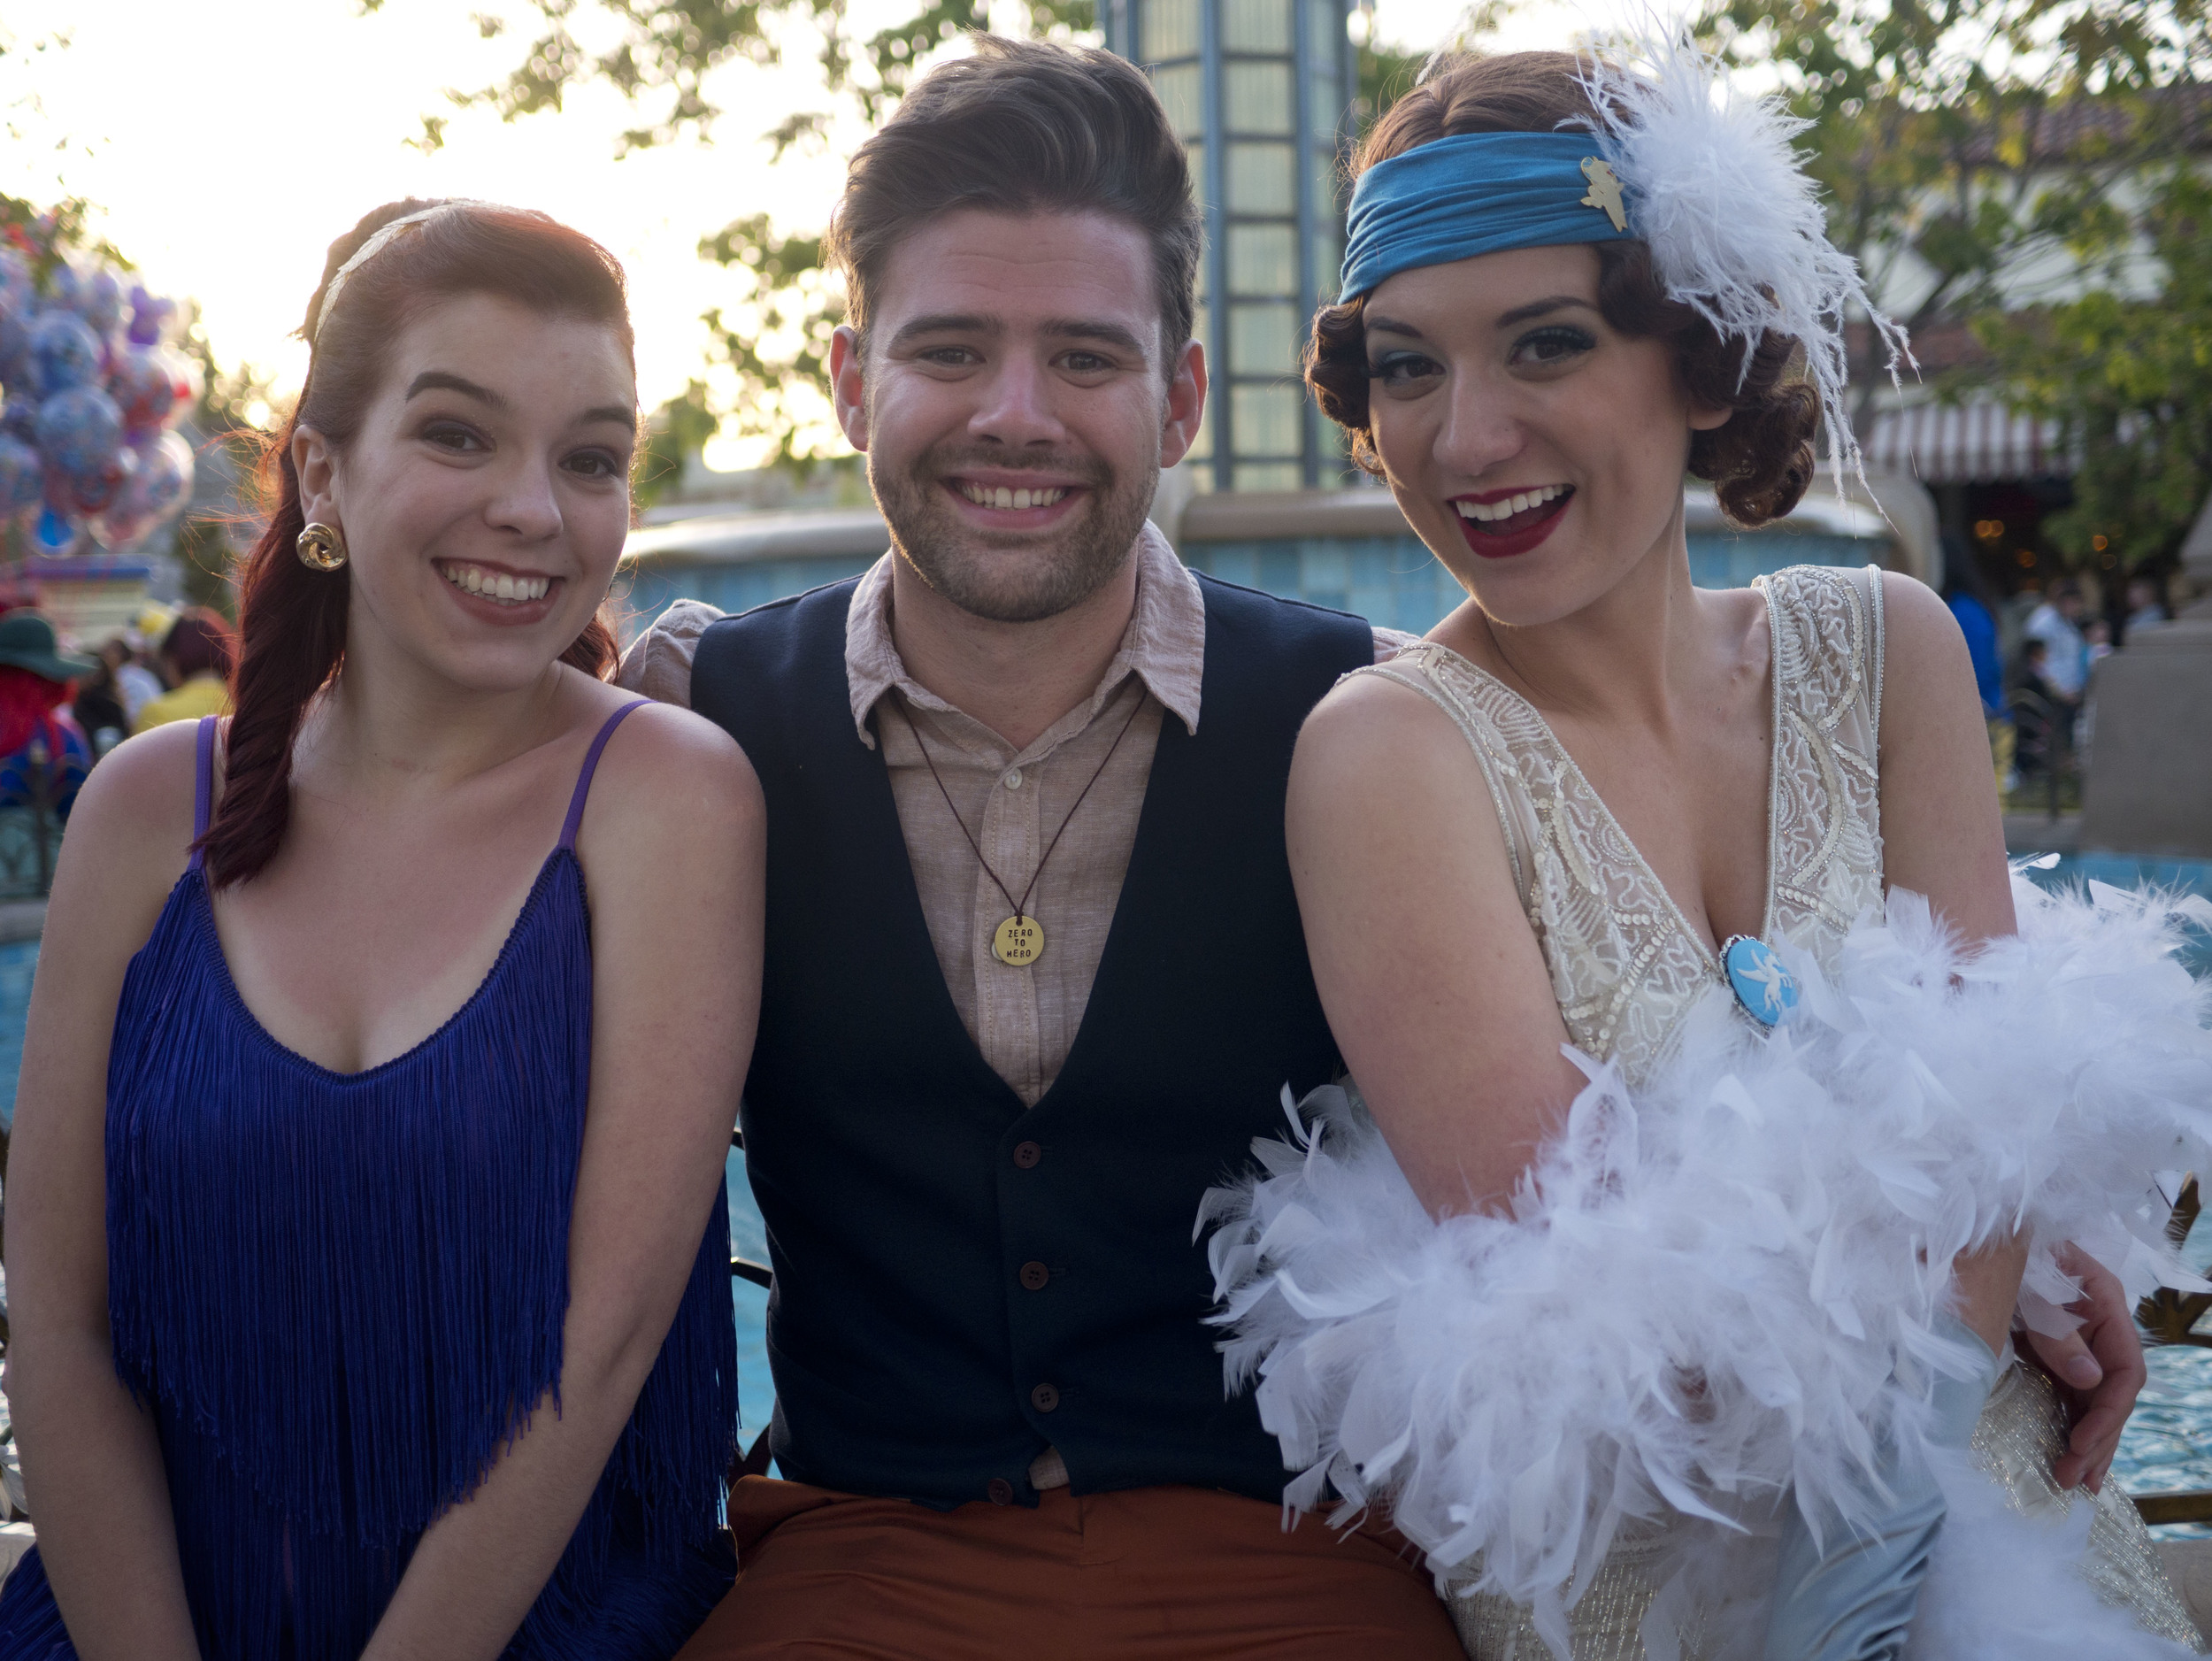 5-2-16 Spring Dapper Day 111.jpg